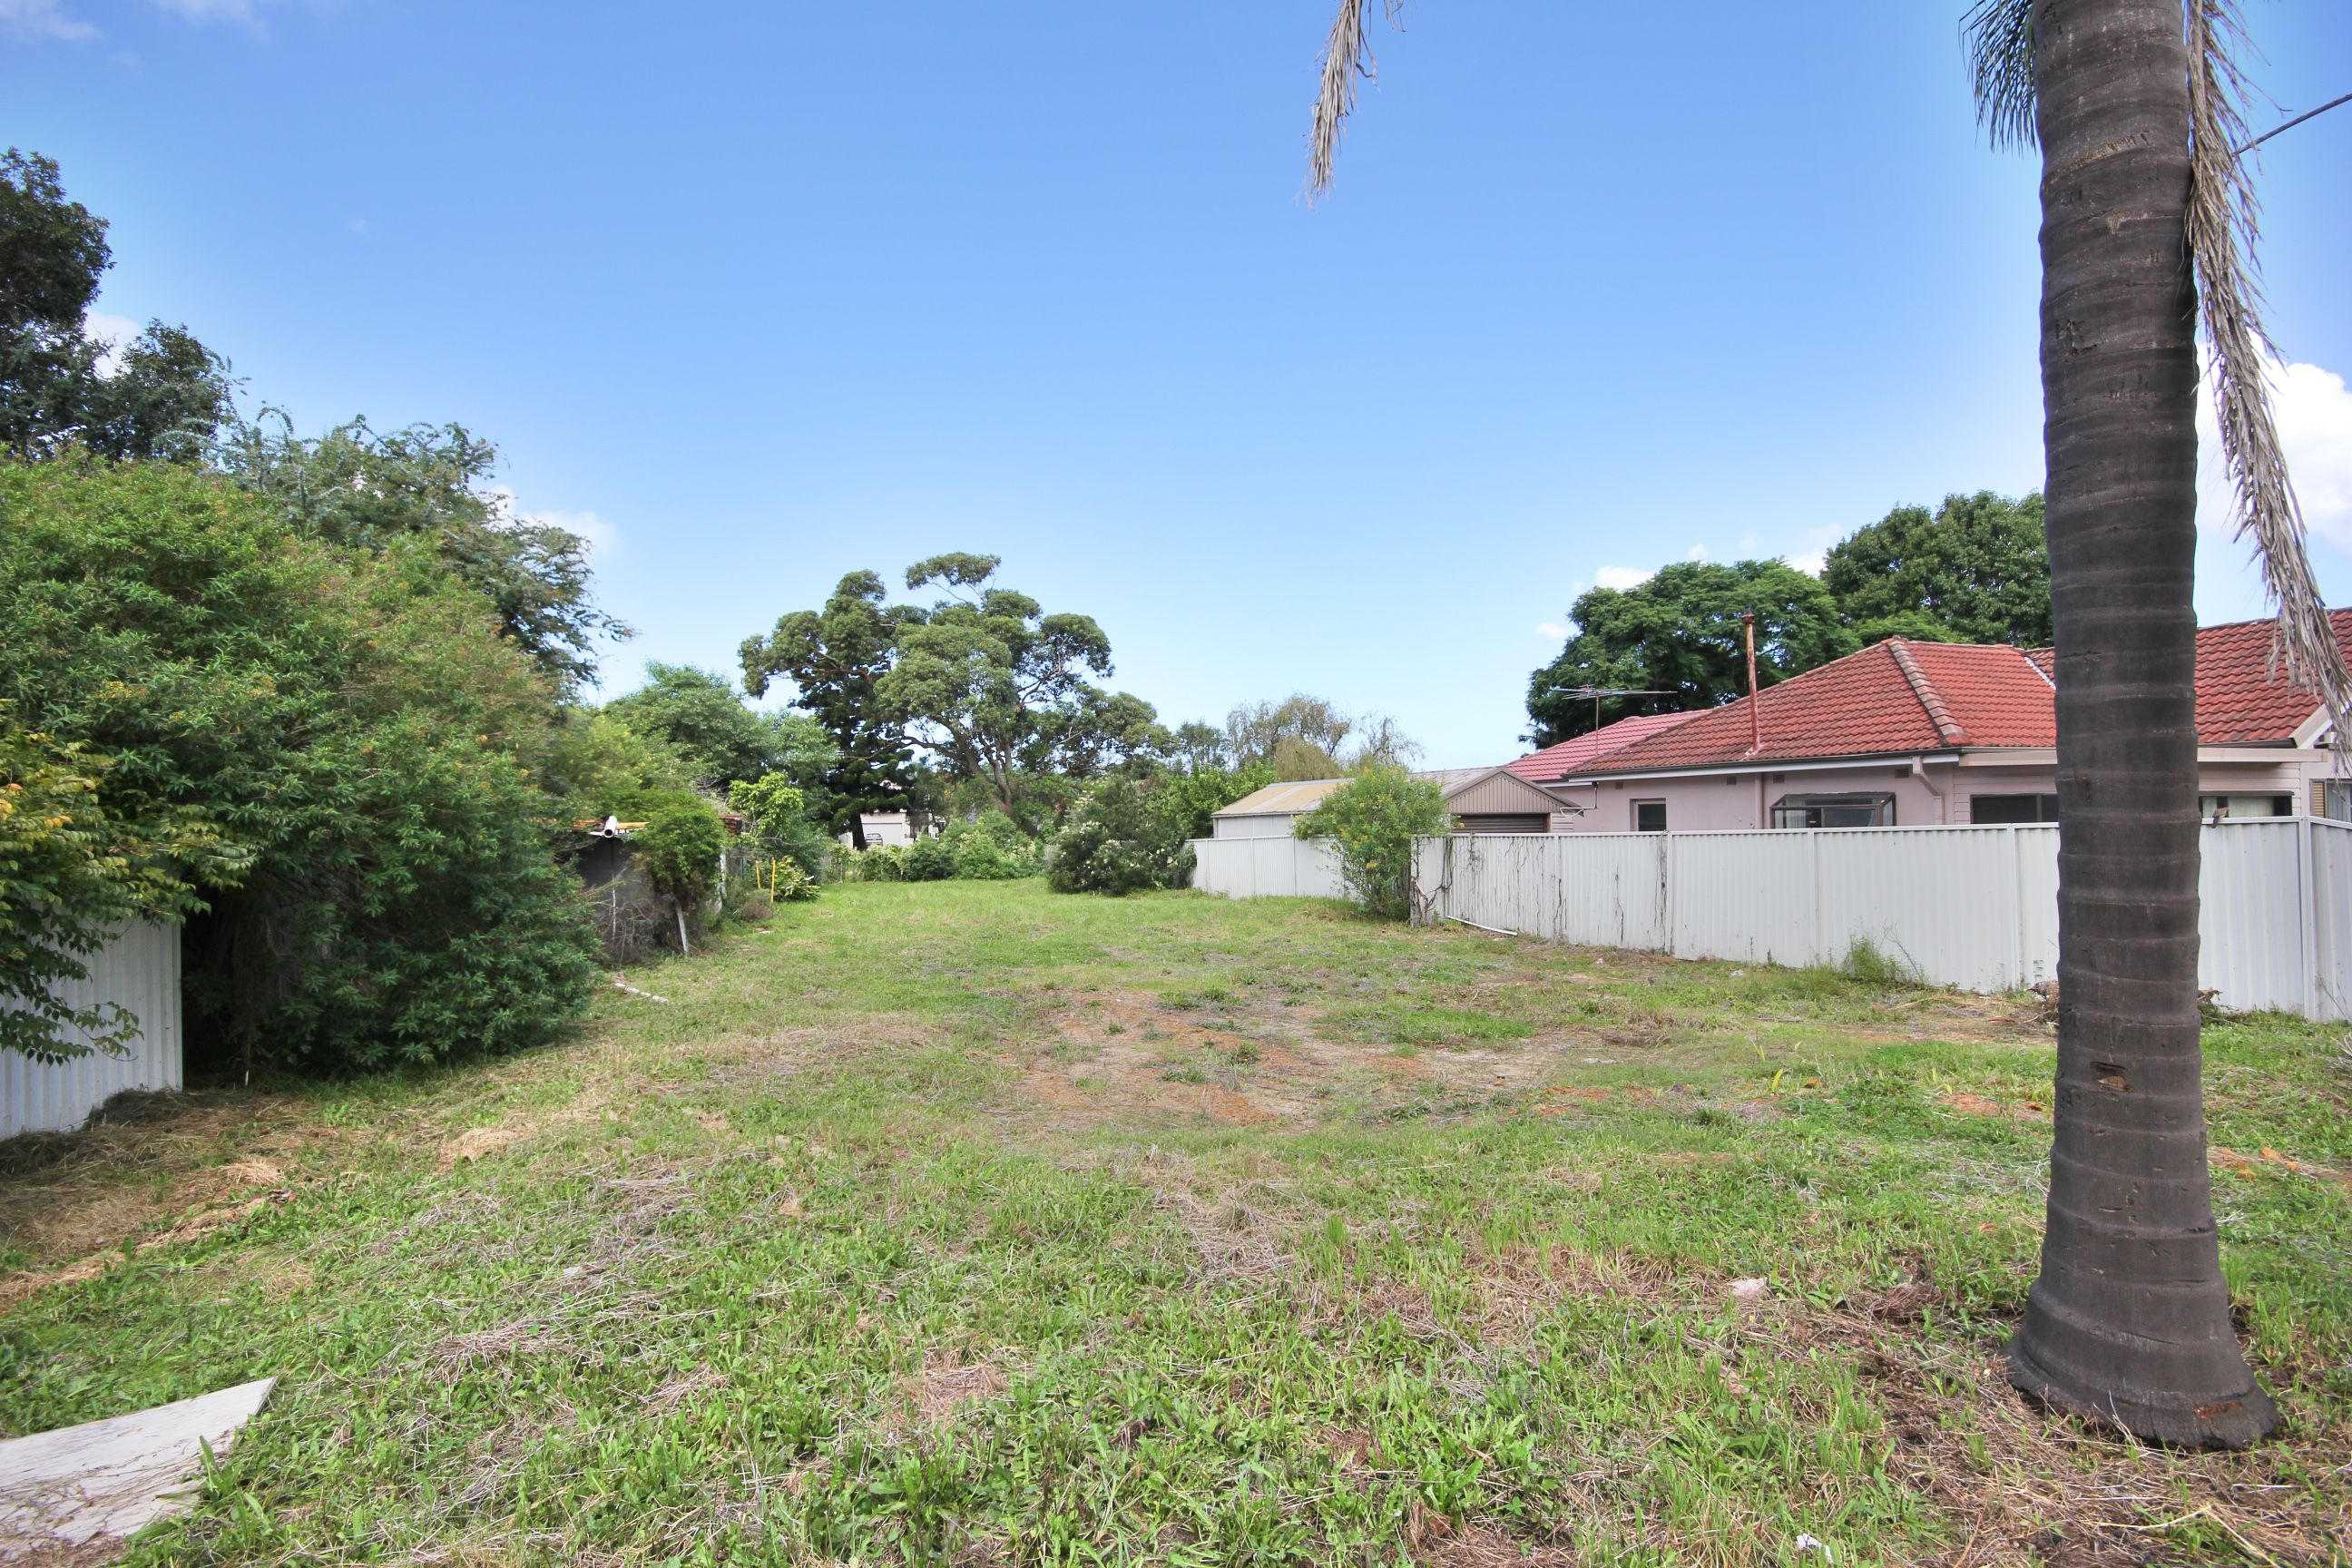 Brad Fair presents: 36 Macdonald Street, Sans Souci, NSW 2219. LAND LAND LAND  This is a very rare offering of a wide fronted level vacant block of land. Dimensions 16.574/15.742 X 45.720m (approx). $695,000. Call 9529 4666 or email reception@prdrb.com.au to enquire. See more on realestate.com.au http://www.realestate.com.au/property-other-nsw-sans+souci-110009829